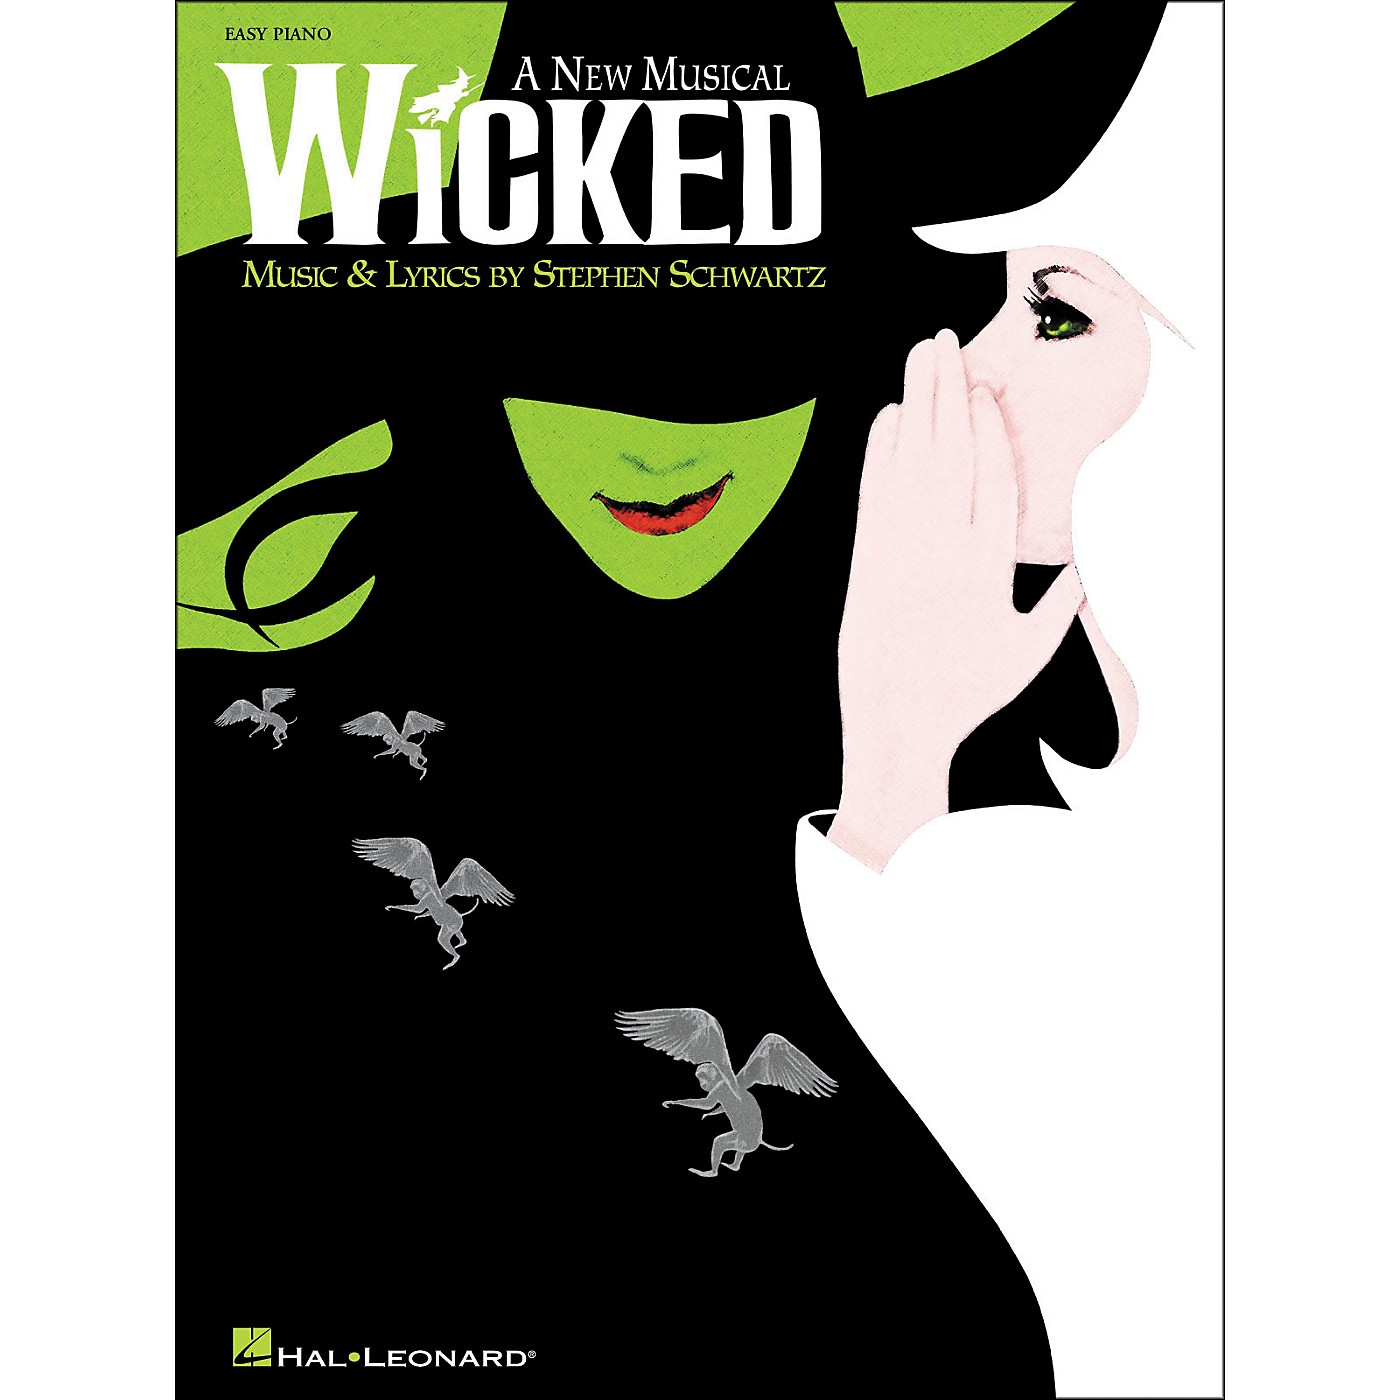 Hal Leonard Wicked - A New Musical for Easy Piano thumbnail